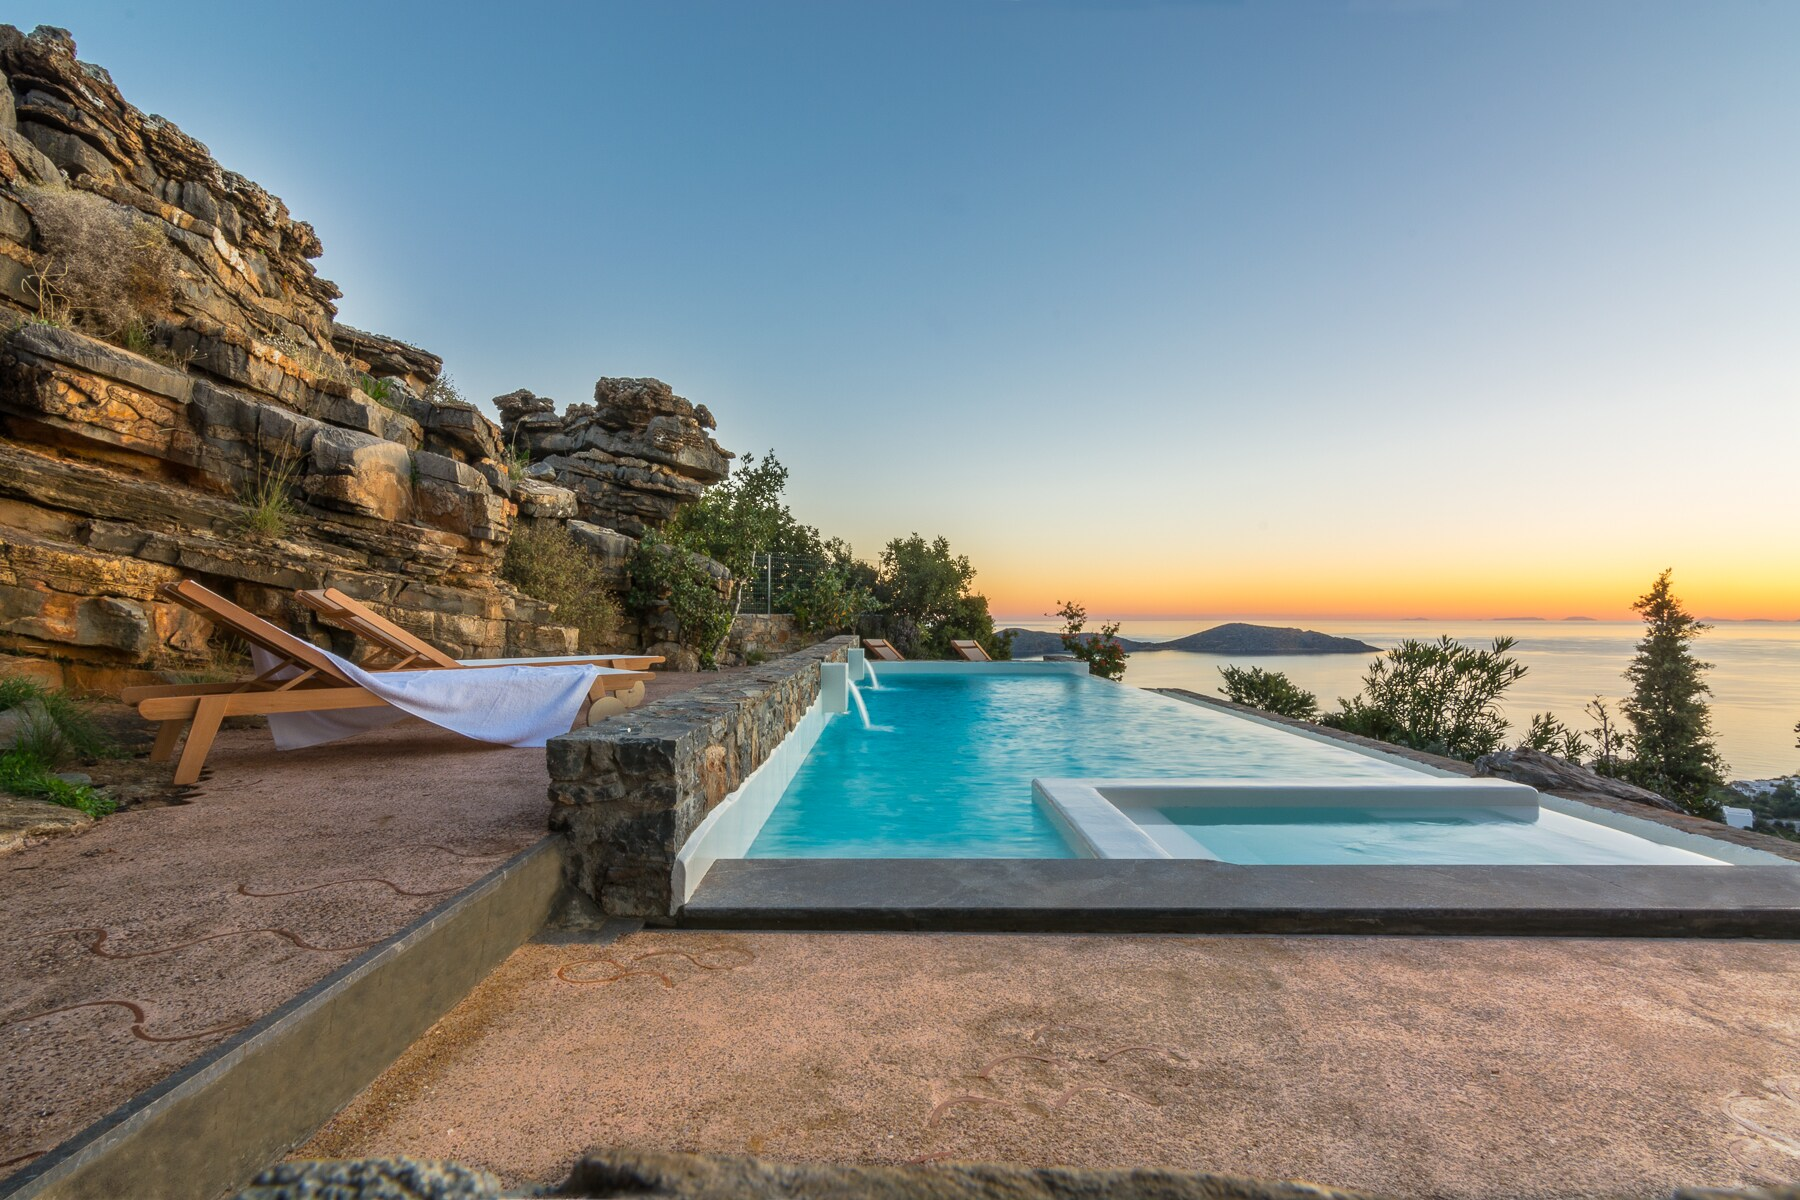 Property Image 1 - Stylish Natural Villa with Private Pool